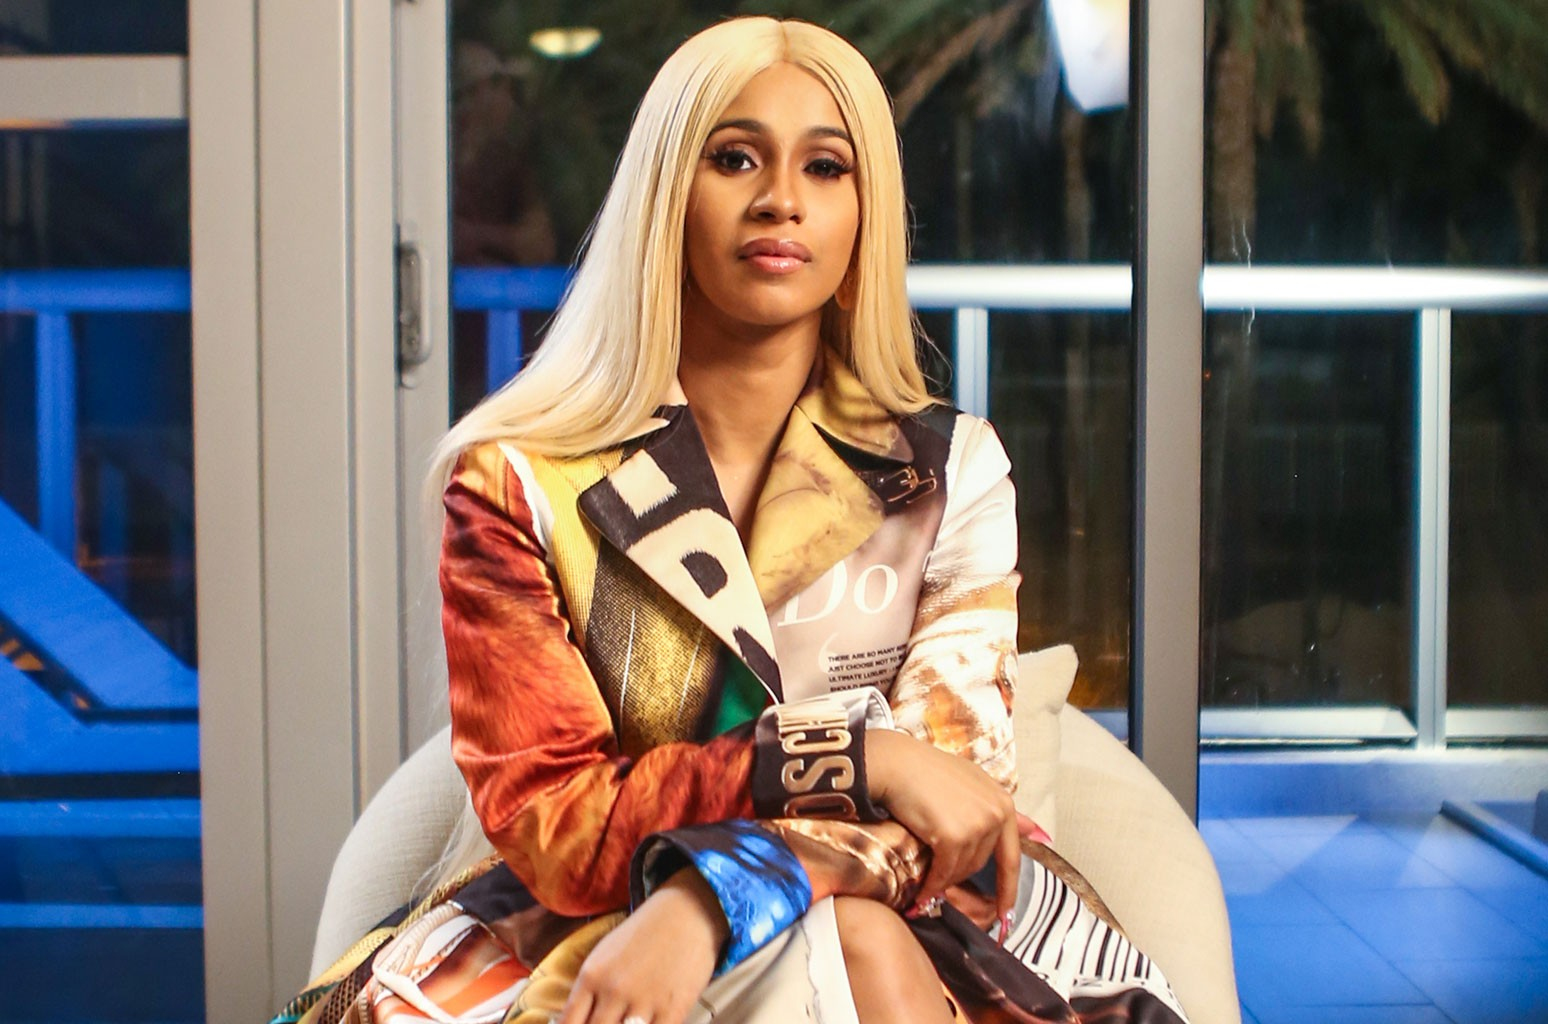 Cardi B S I Like It With Bad Bunny And J Balvin Goes Beyond